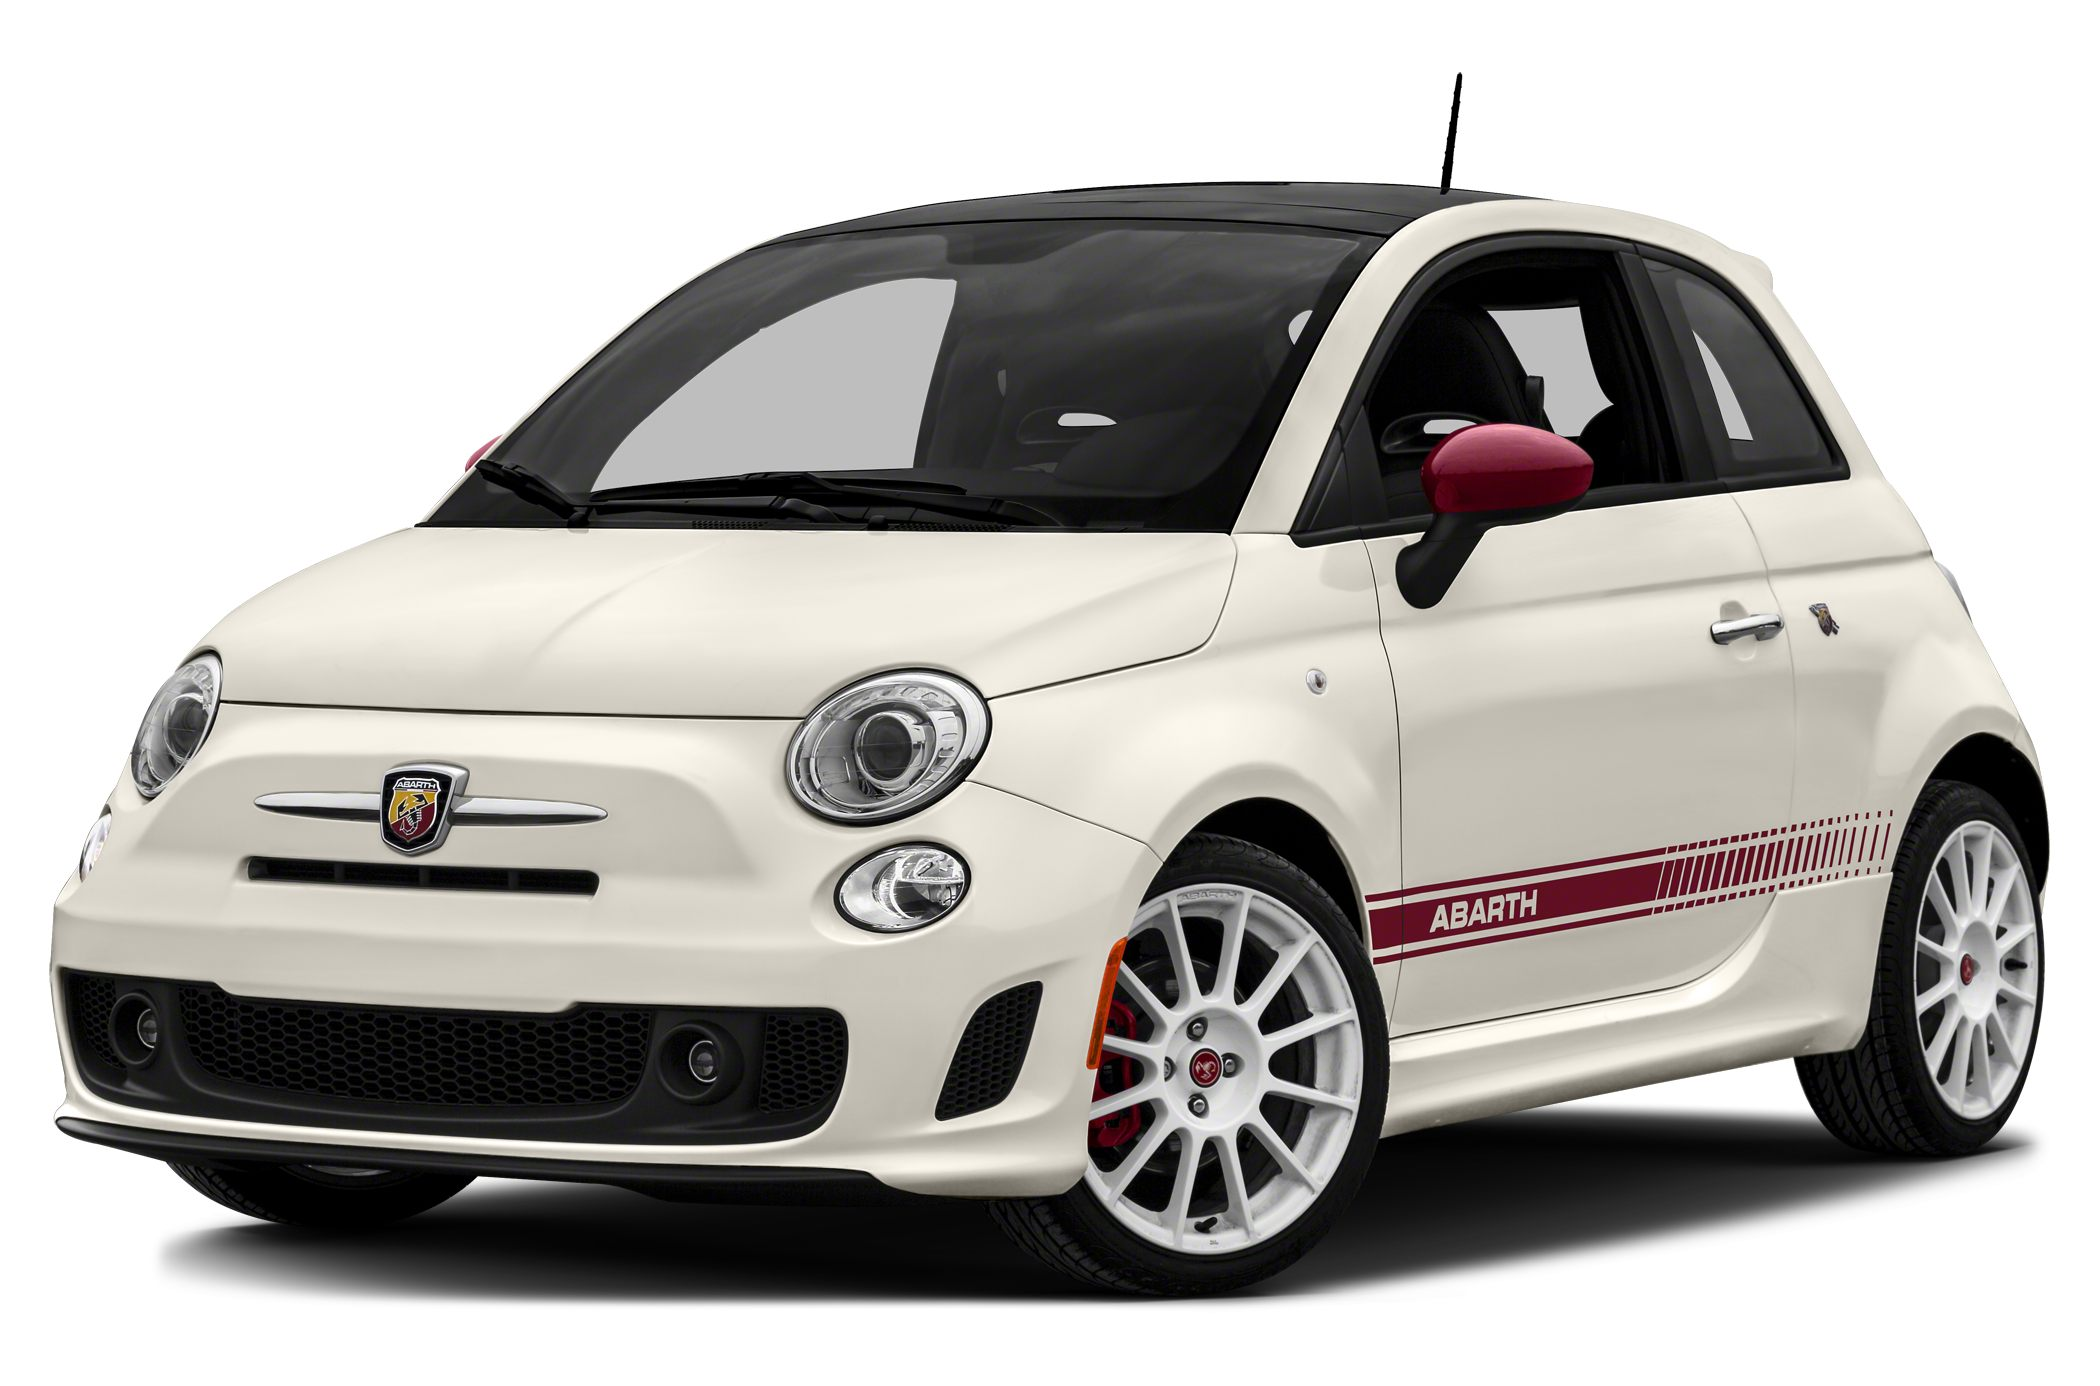 preview engine fiat cars abarth cargurus size overview pic